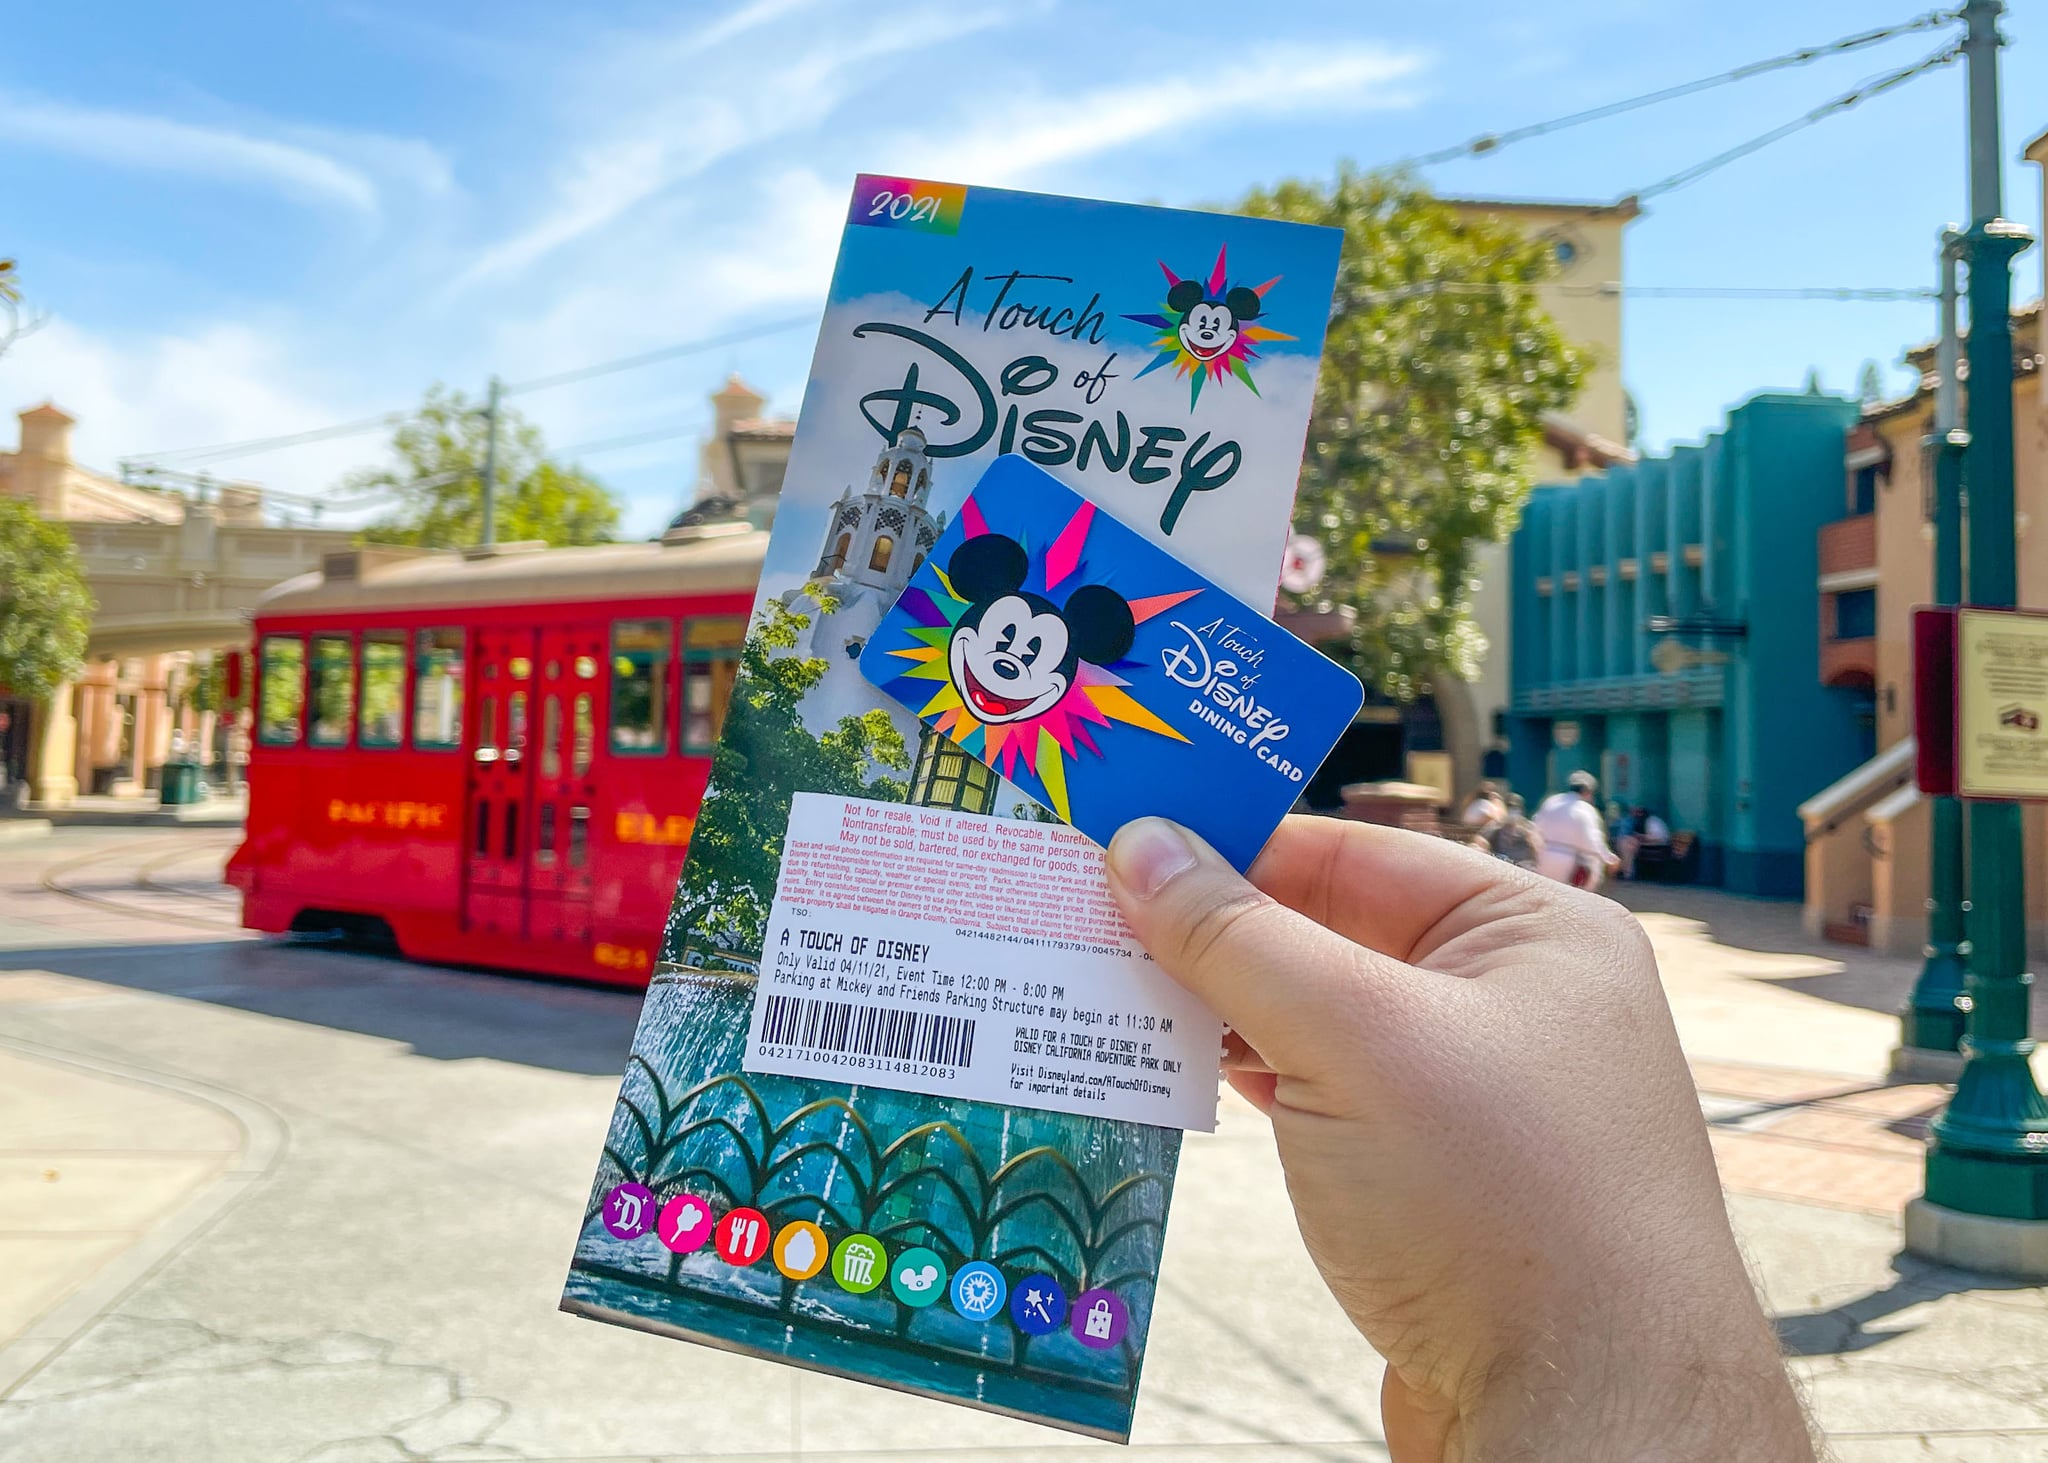 ANAHEIM, CA - APRIL 11: General views of Disney California Adventure Park at the Disneyland Resort, which has reopened for outdoor dining and shopping on April 11, 2021 in Anaheim, California.  (Photo by AaronP/Bauer-Griffin/GC Images)